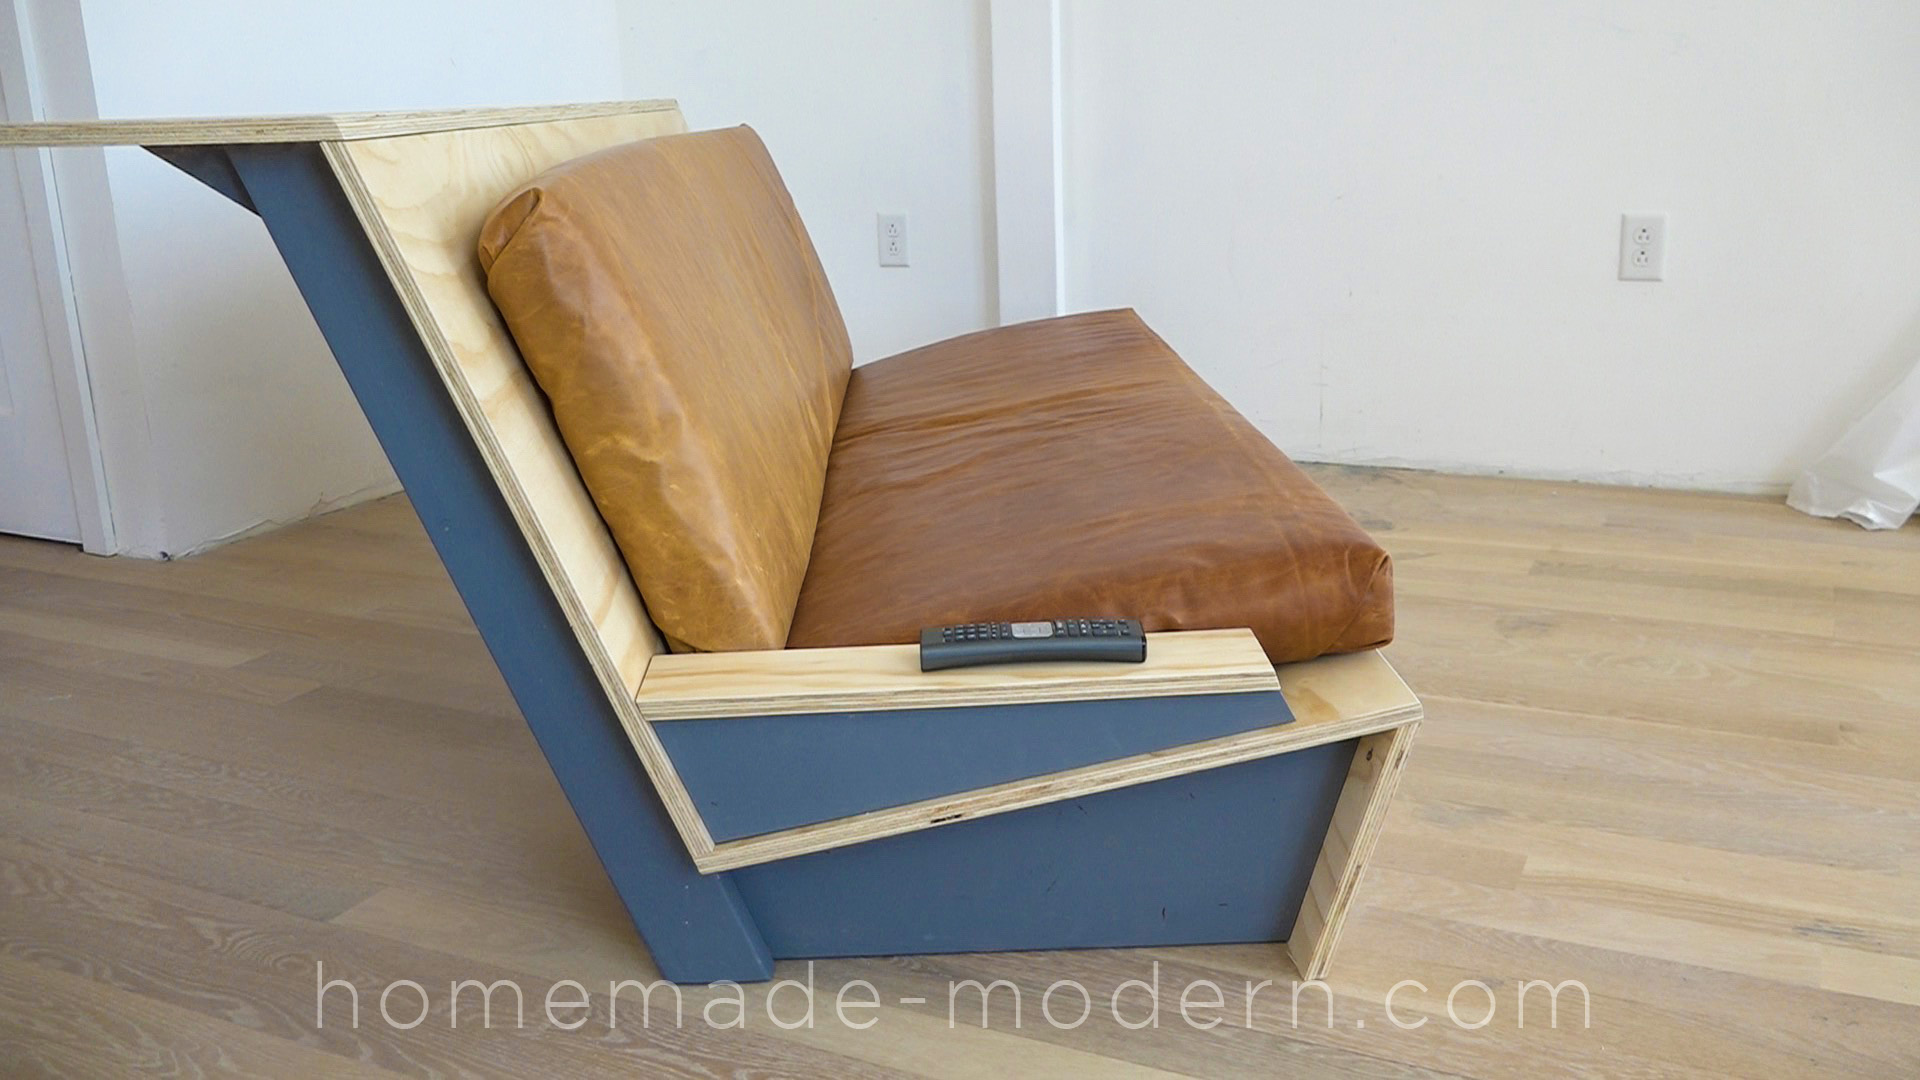 This DIY Zig Zag Sofa was designed specifically for lofts and has a built-in counter along the back. For more information go to HomeMade-Modern.com